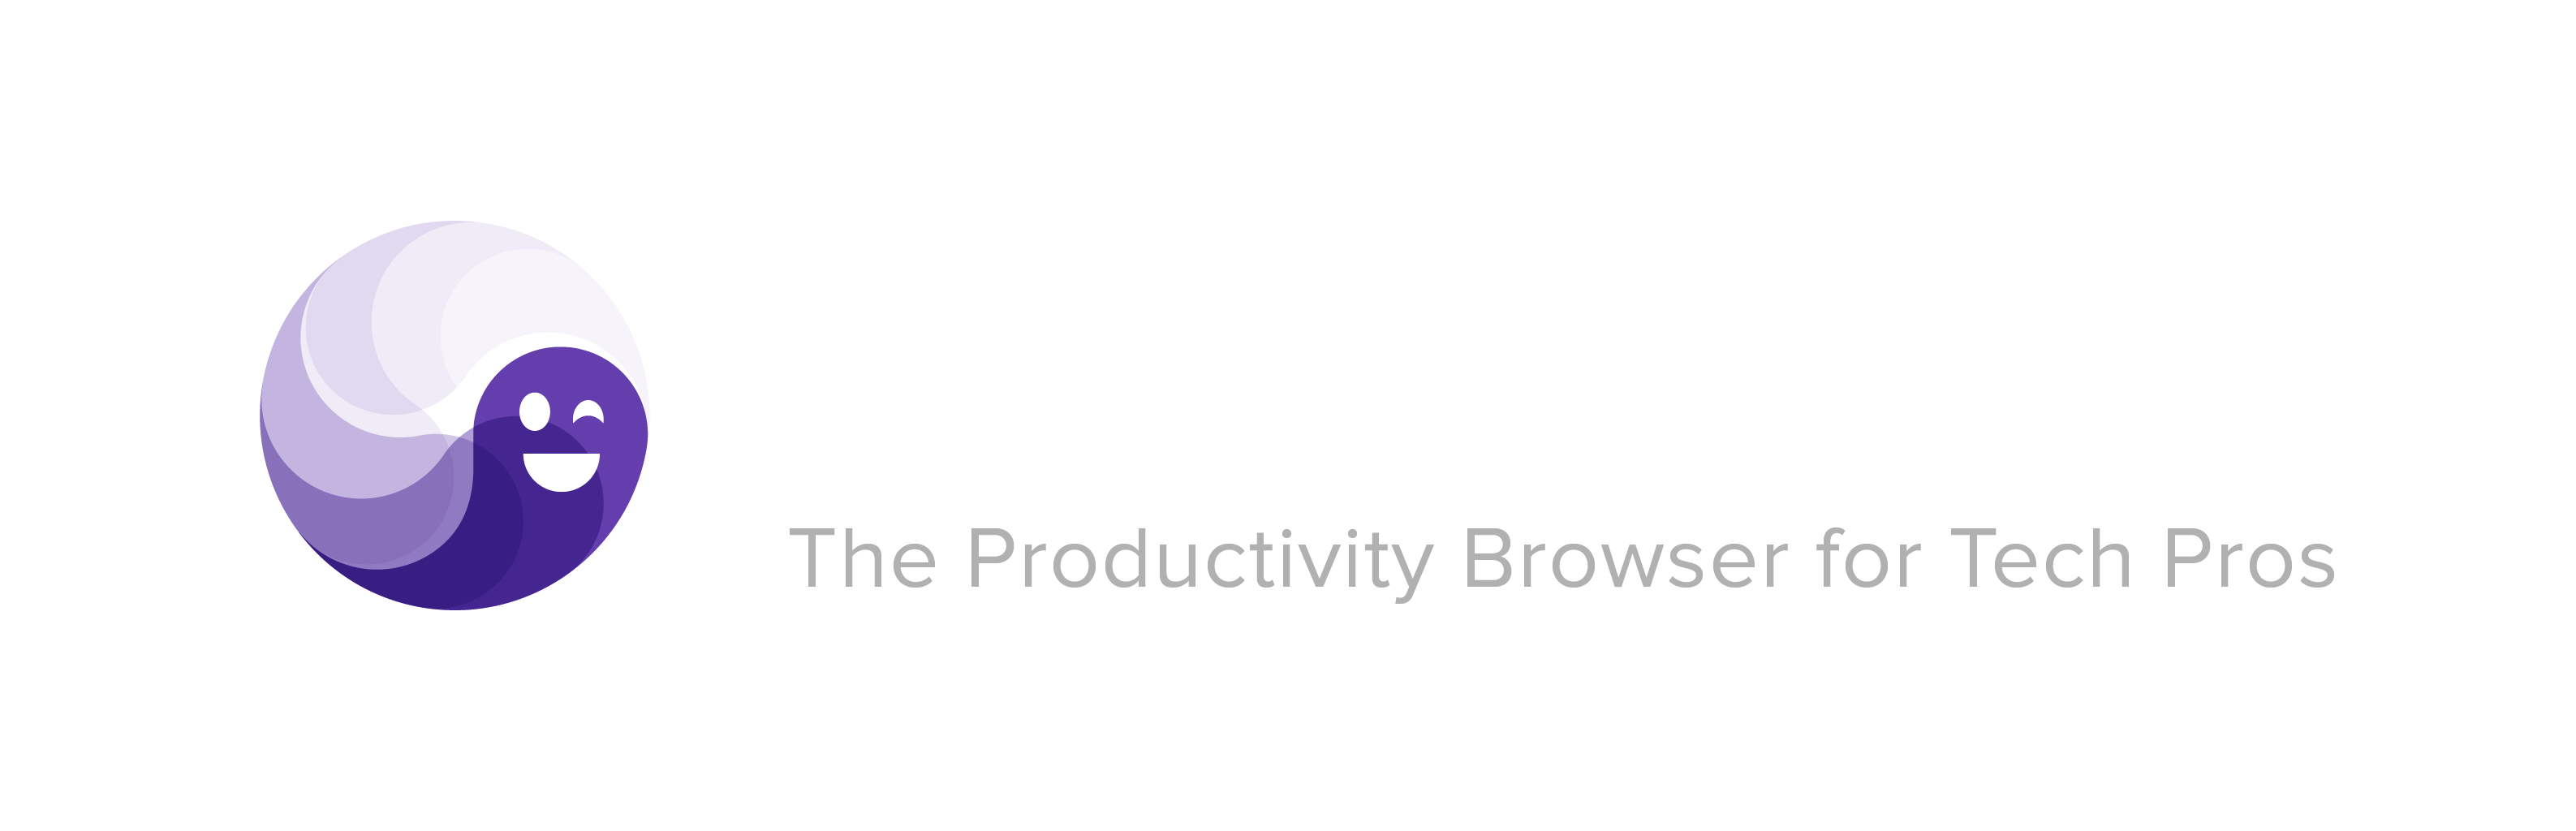 ghost_browser_tl_1587x512_white_tr_2x